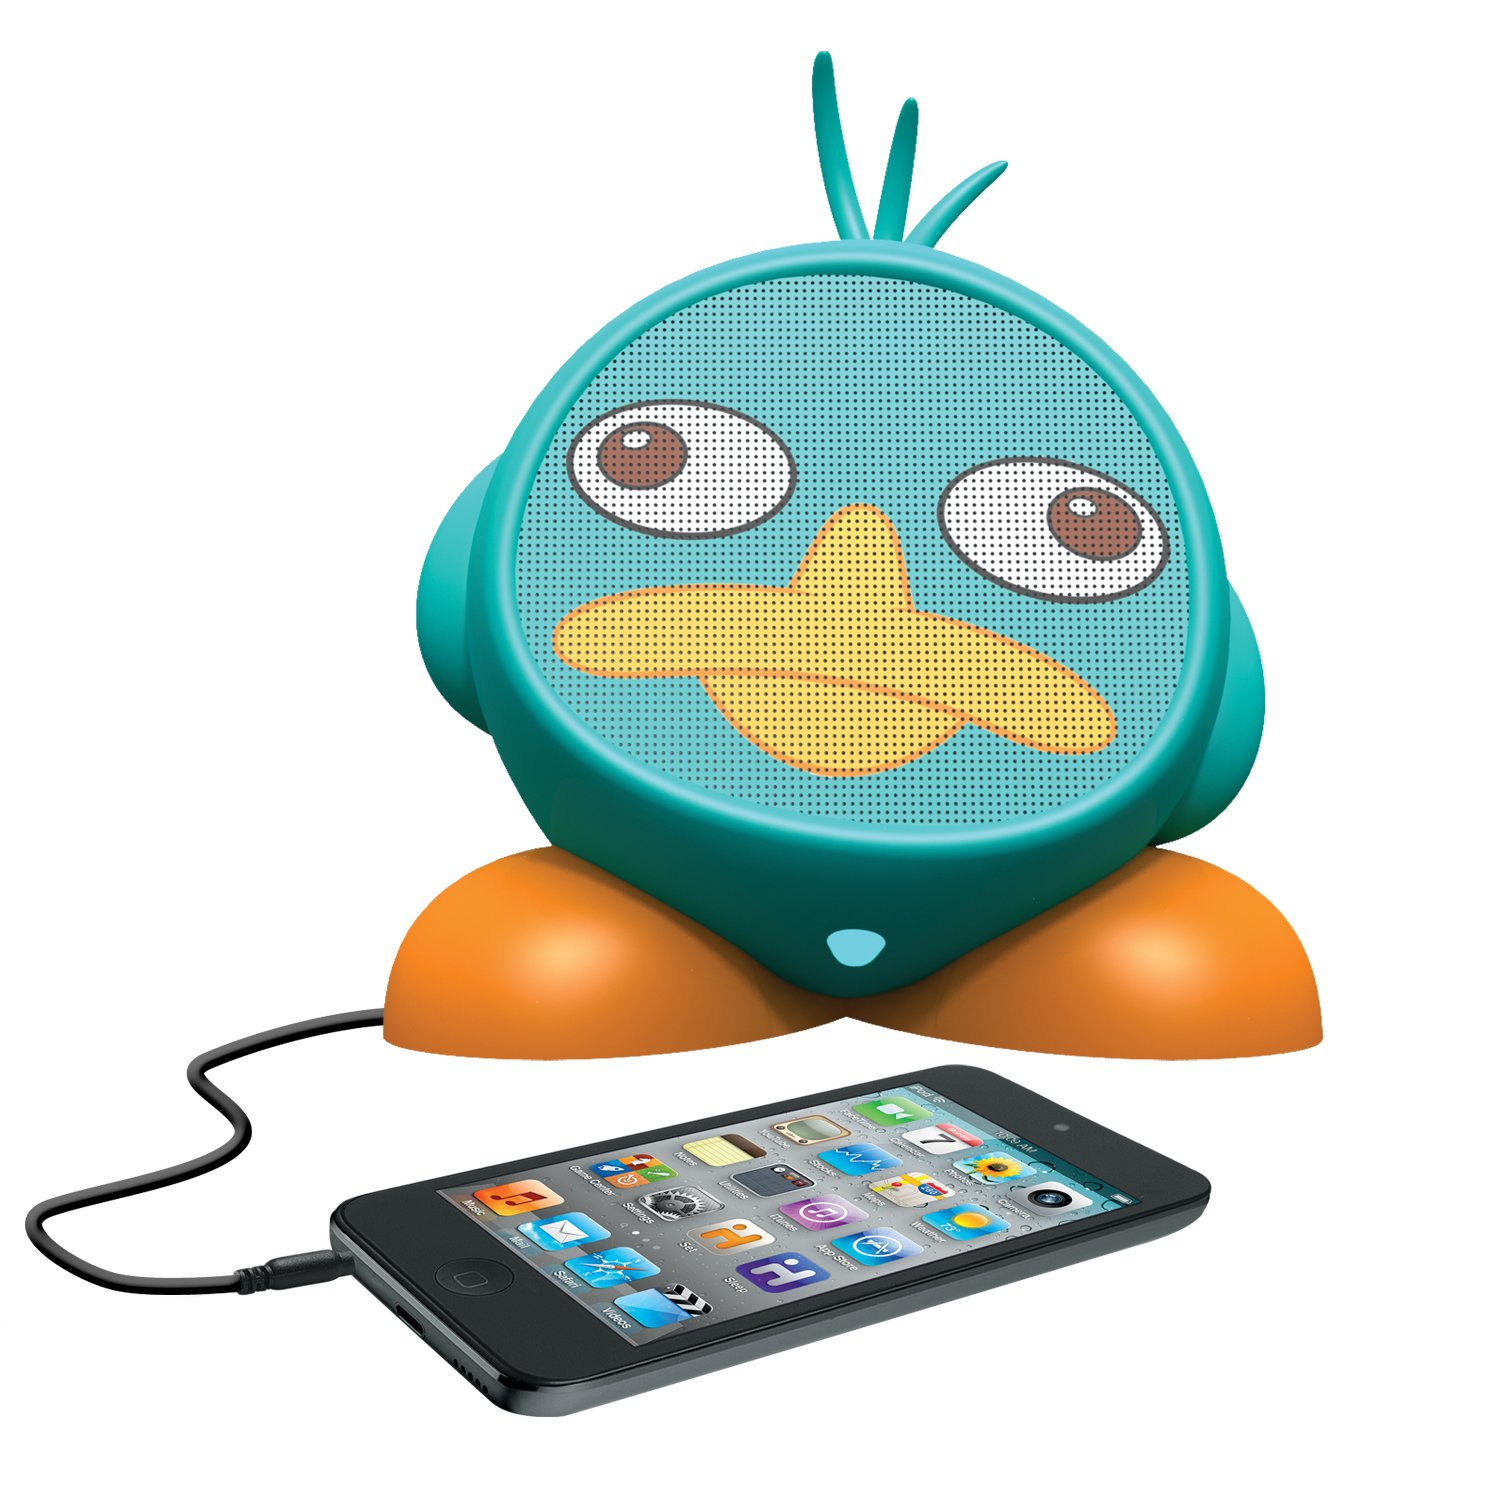 Amazon.com: Phineas and Ferb Rechargeable Character Speaker, DF-M662 ...